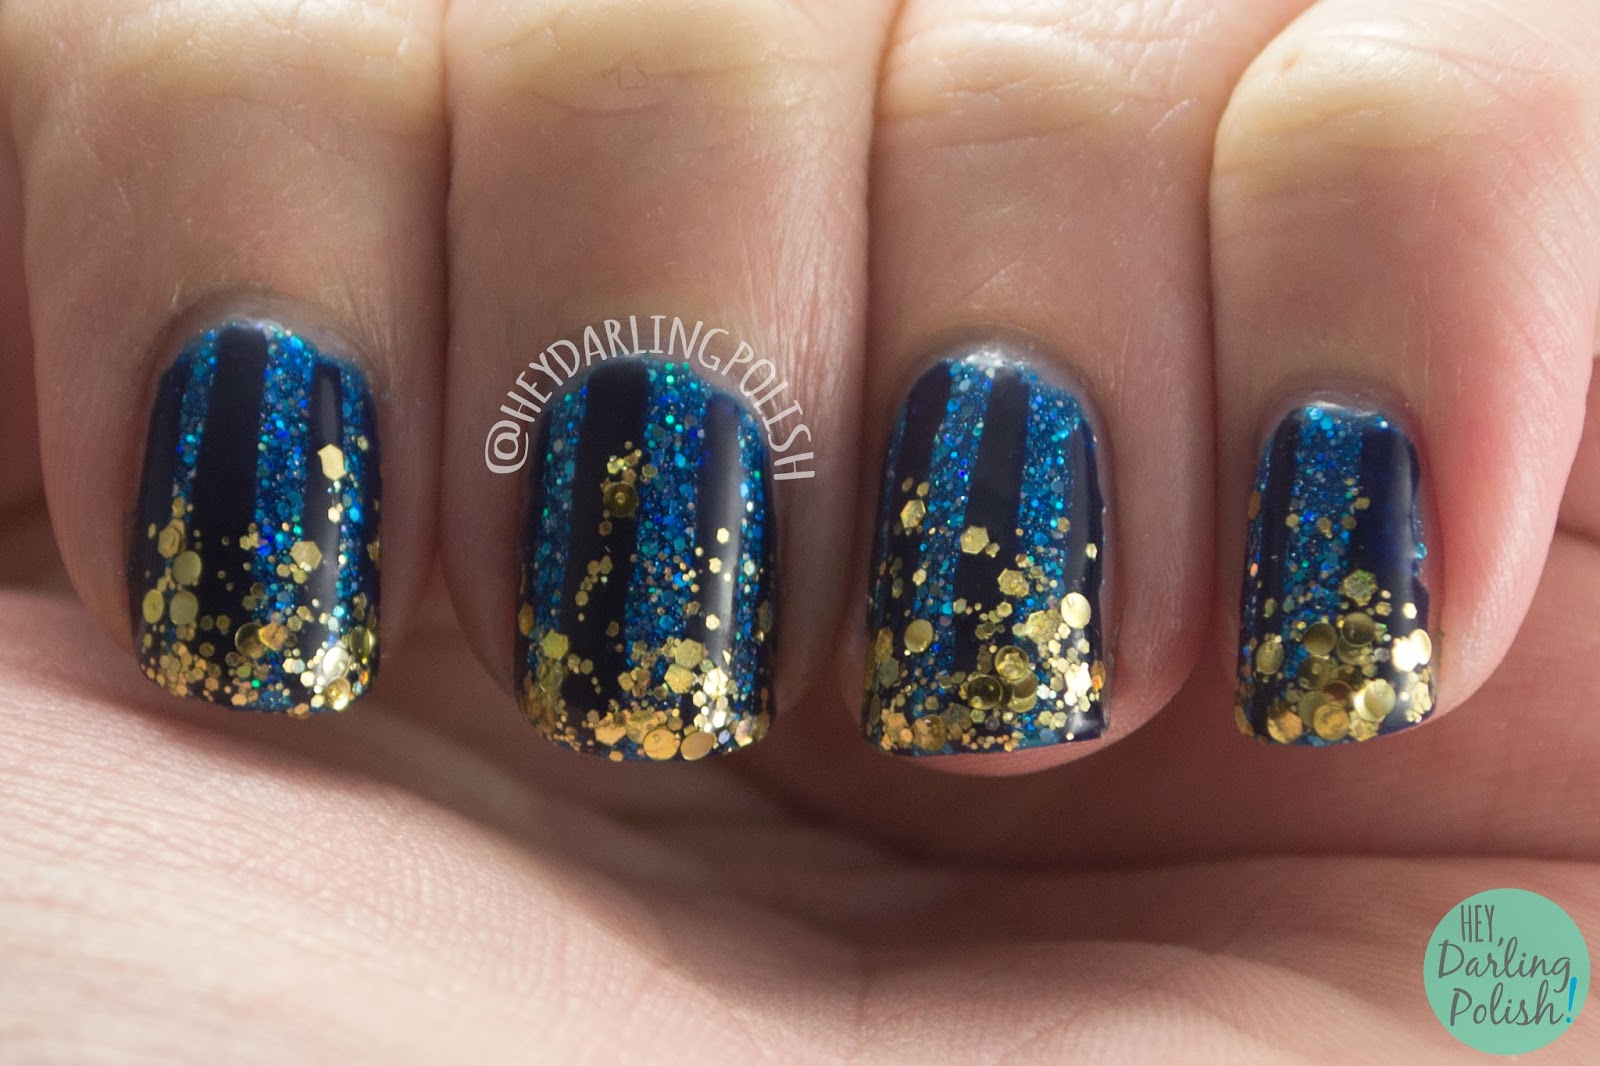 nails, nail art, nail polish, gold, glitter, blue, stripes, tape manicure, new years ever, hey darling polish, 31dc2015